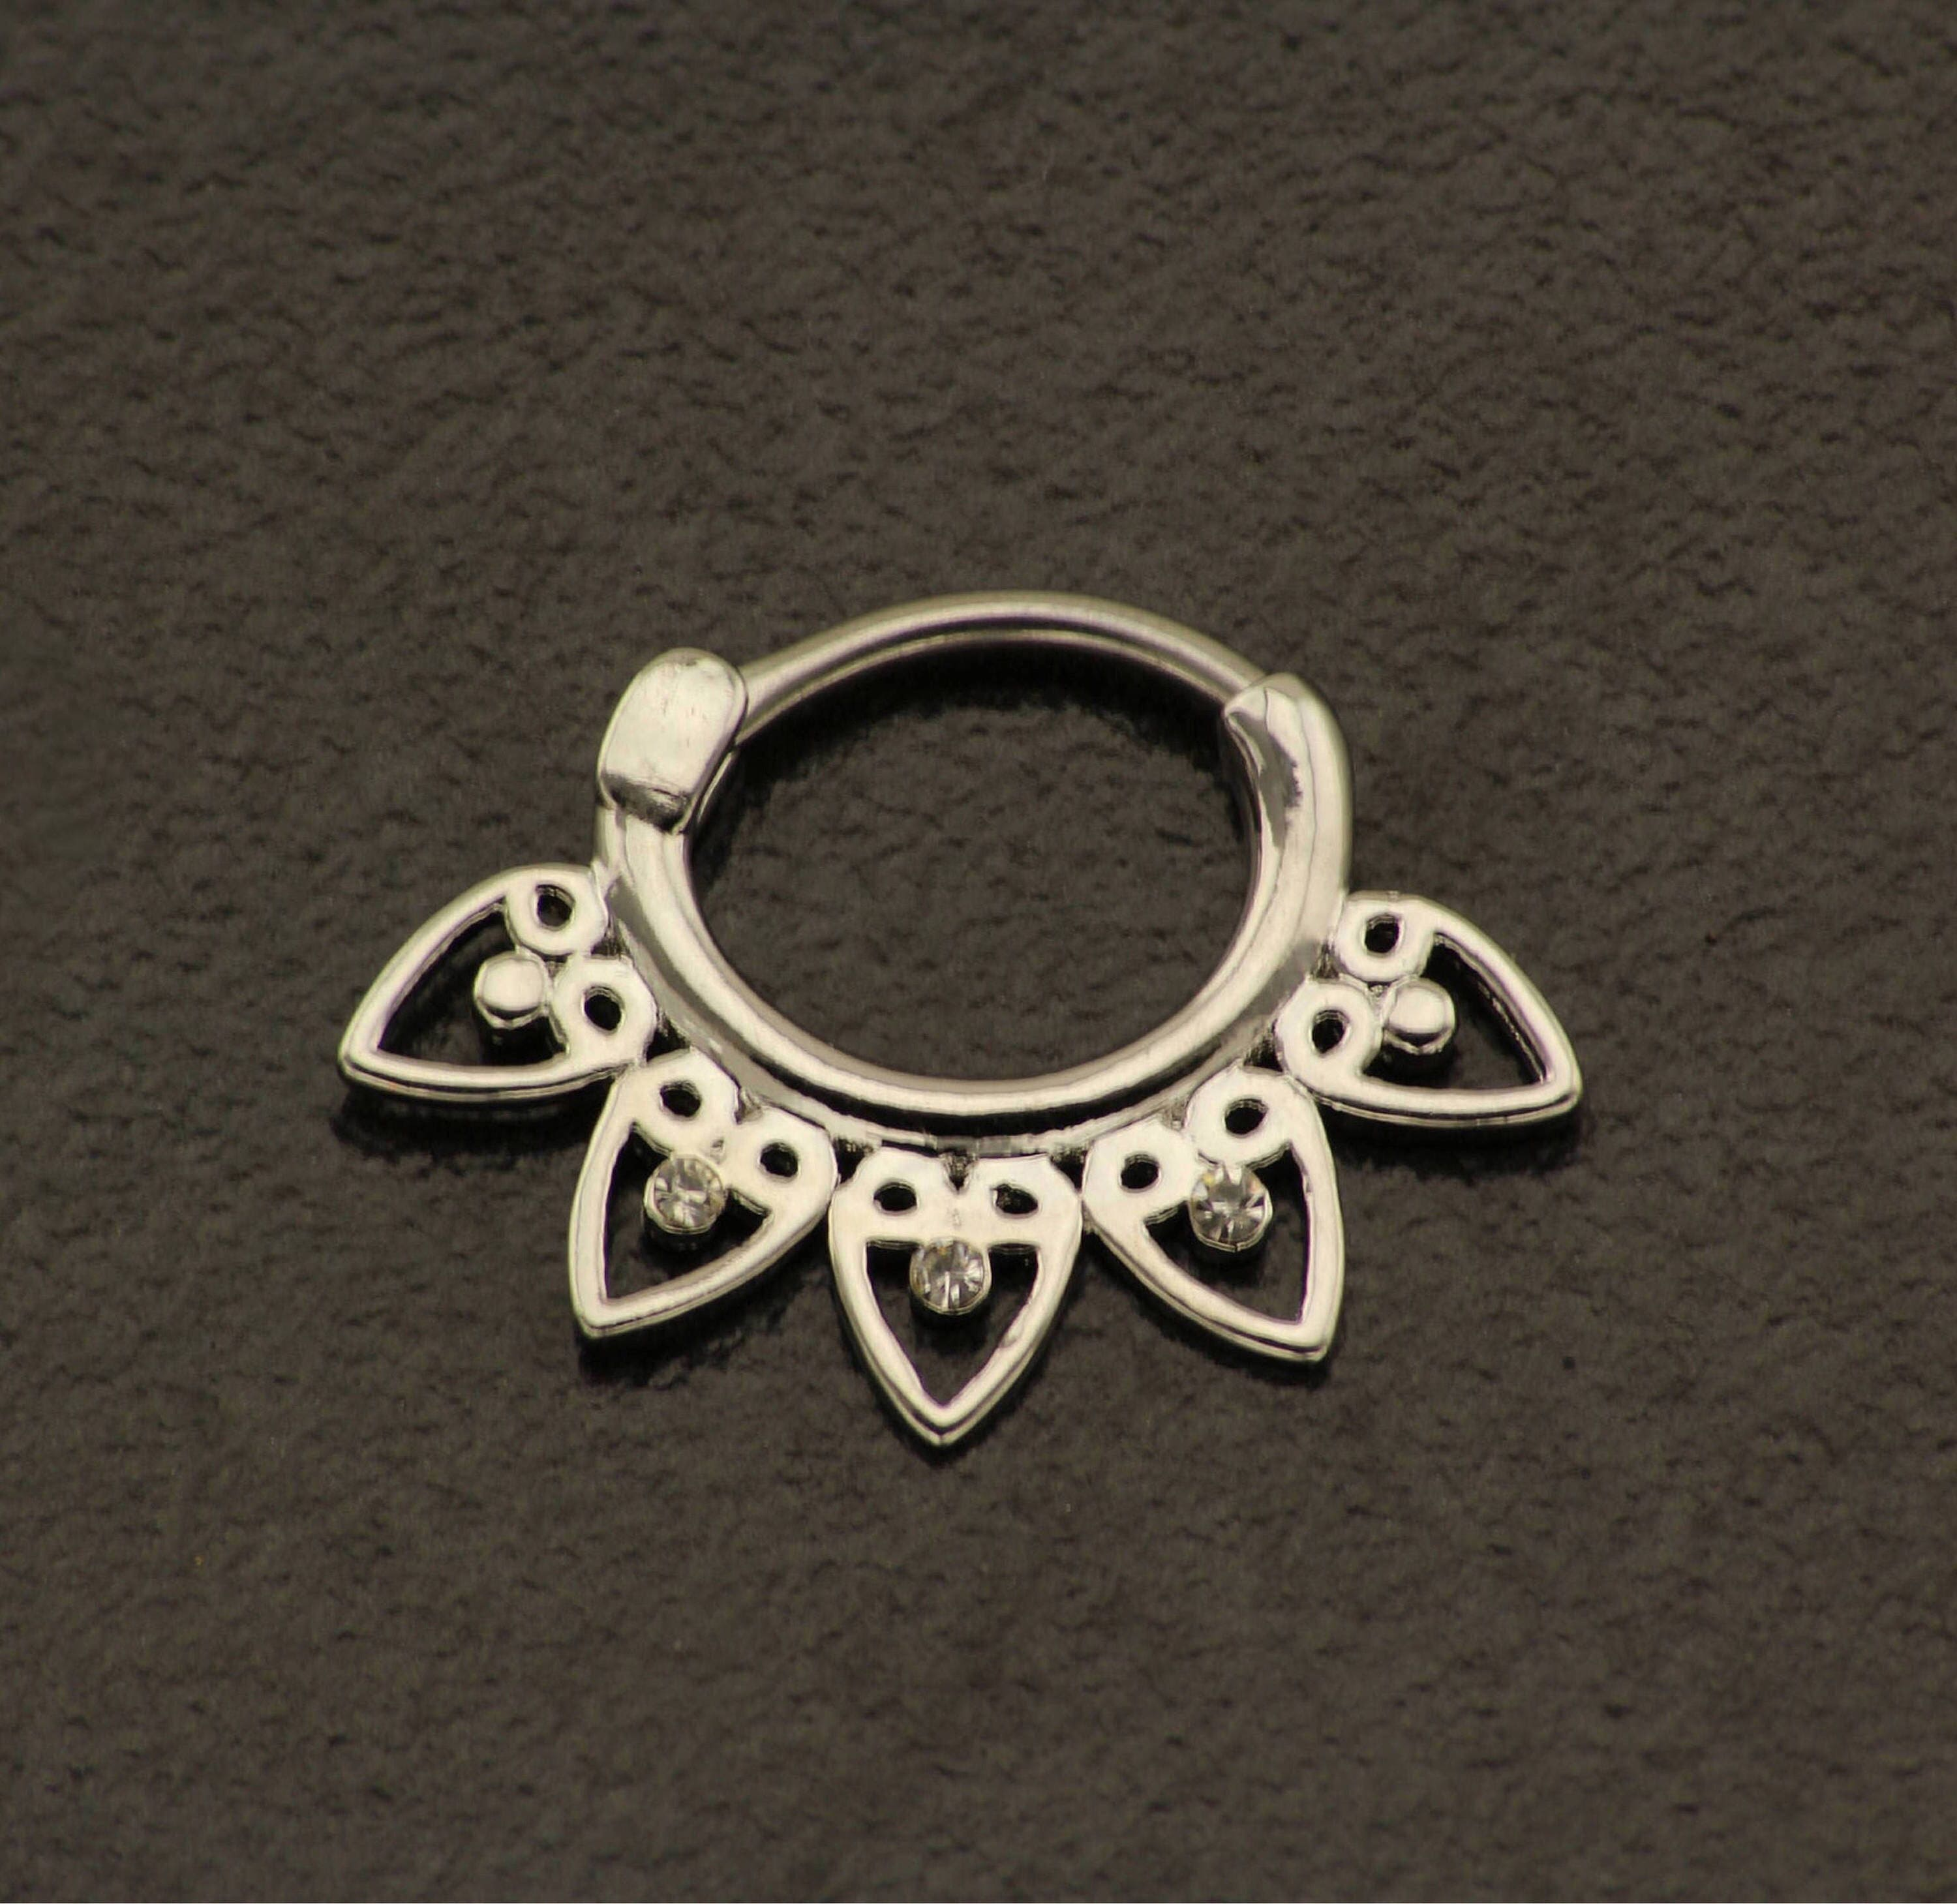 Elegant Body Jewellery. Hippie Clicker Boho Nose Ring Silver Plated Septum Jewelry Bohemian Hipster Nose Piercing Opal Septum Ring 16g